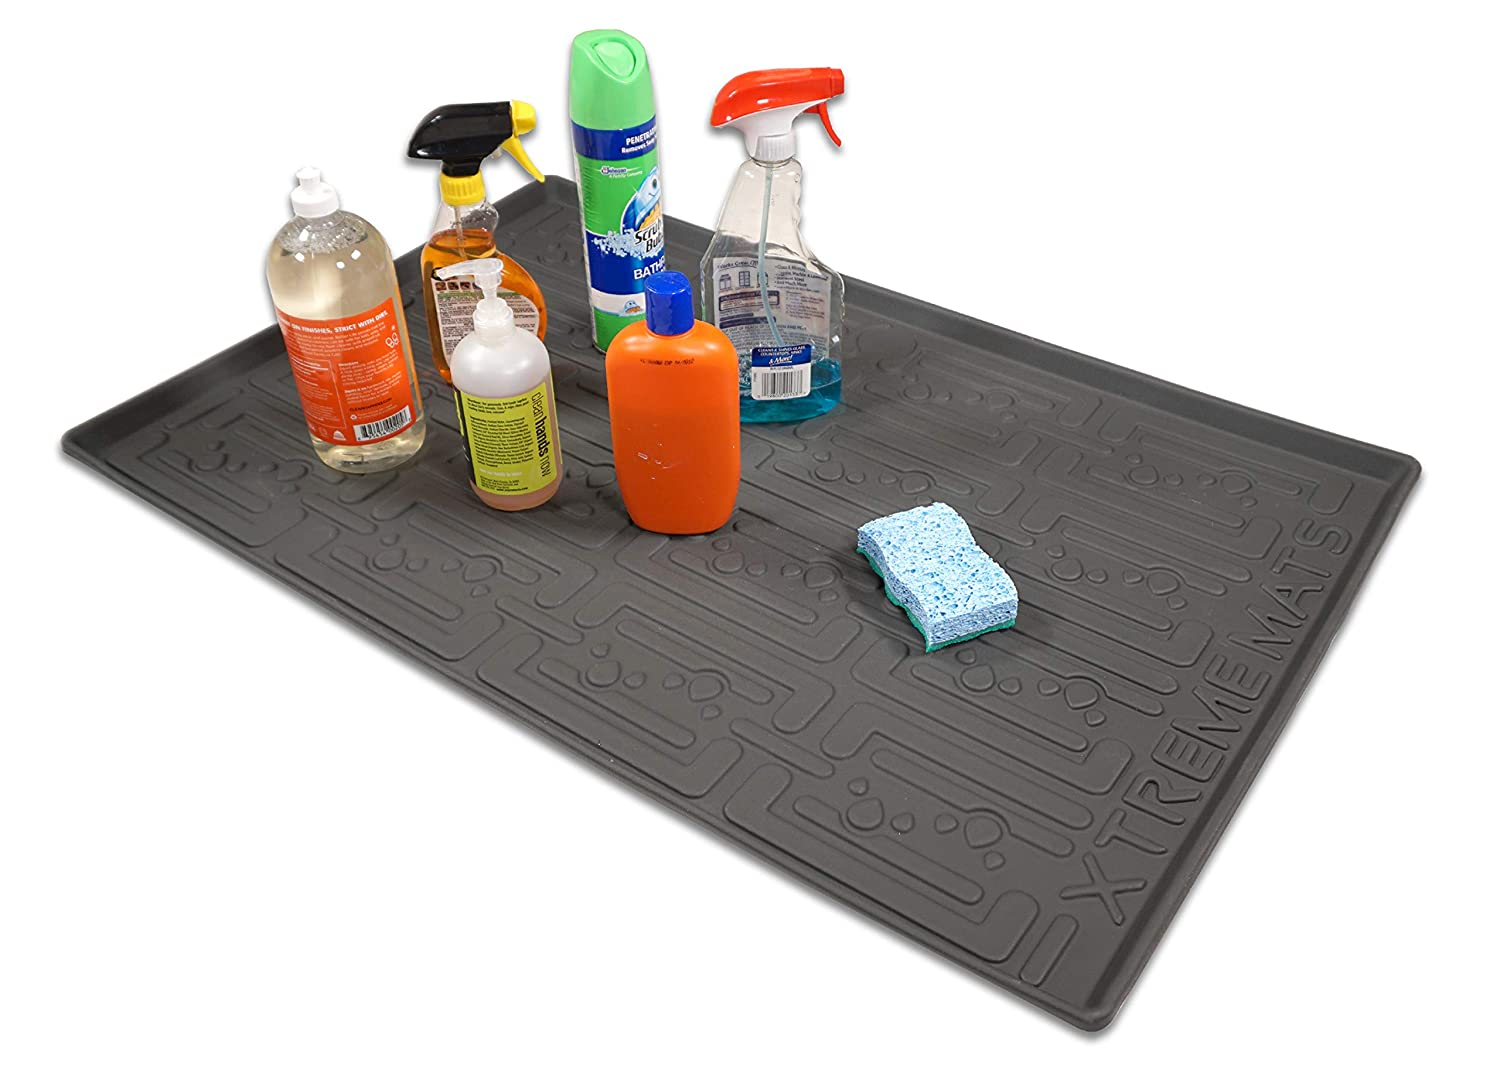 Xtreme Mats Under Sink Kitchen Cabinet Mat, 33 5/8 x 21 7/8, Grey